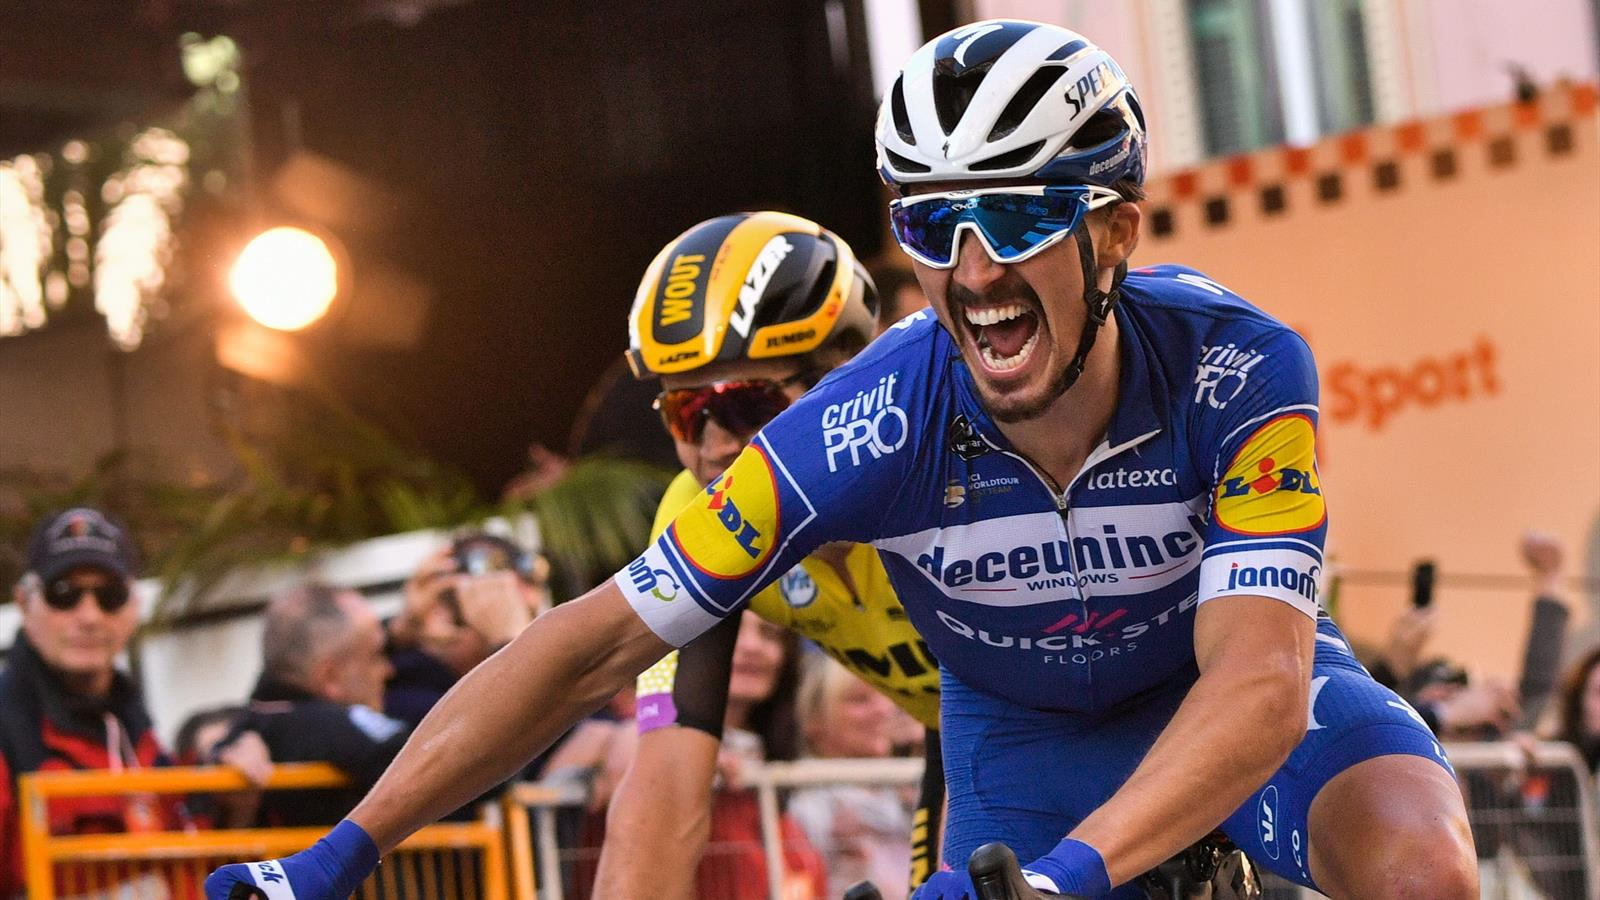 mailand sanremo julian alaphilippe gewinnt klassiker im zielsprint mailand sanremo 2019. Black Bedroom Furniture Sets. Home Design Ideas